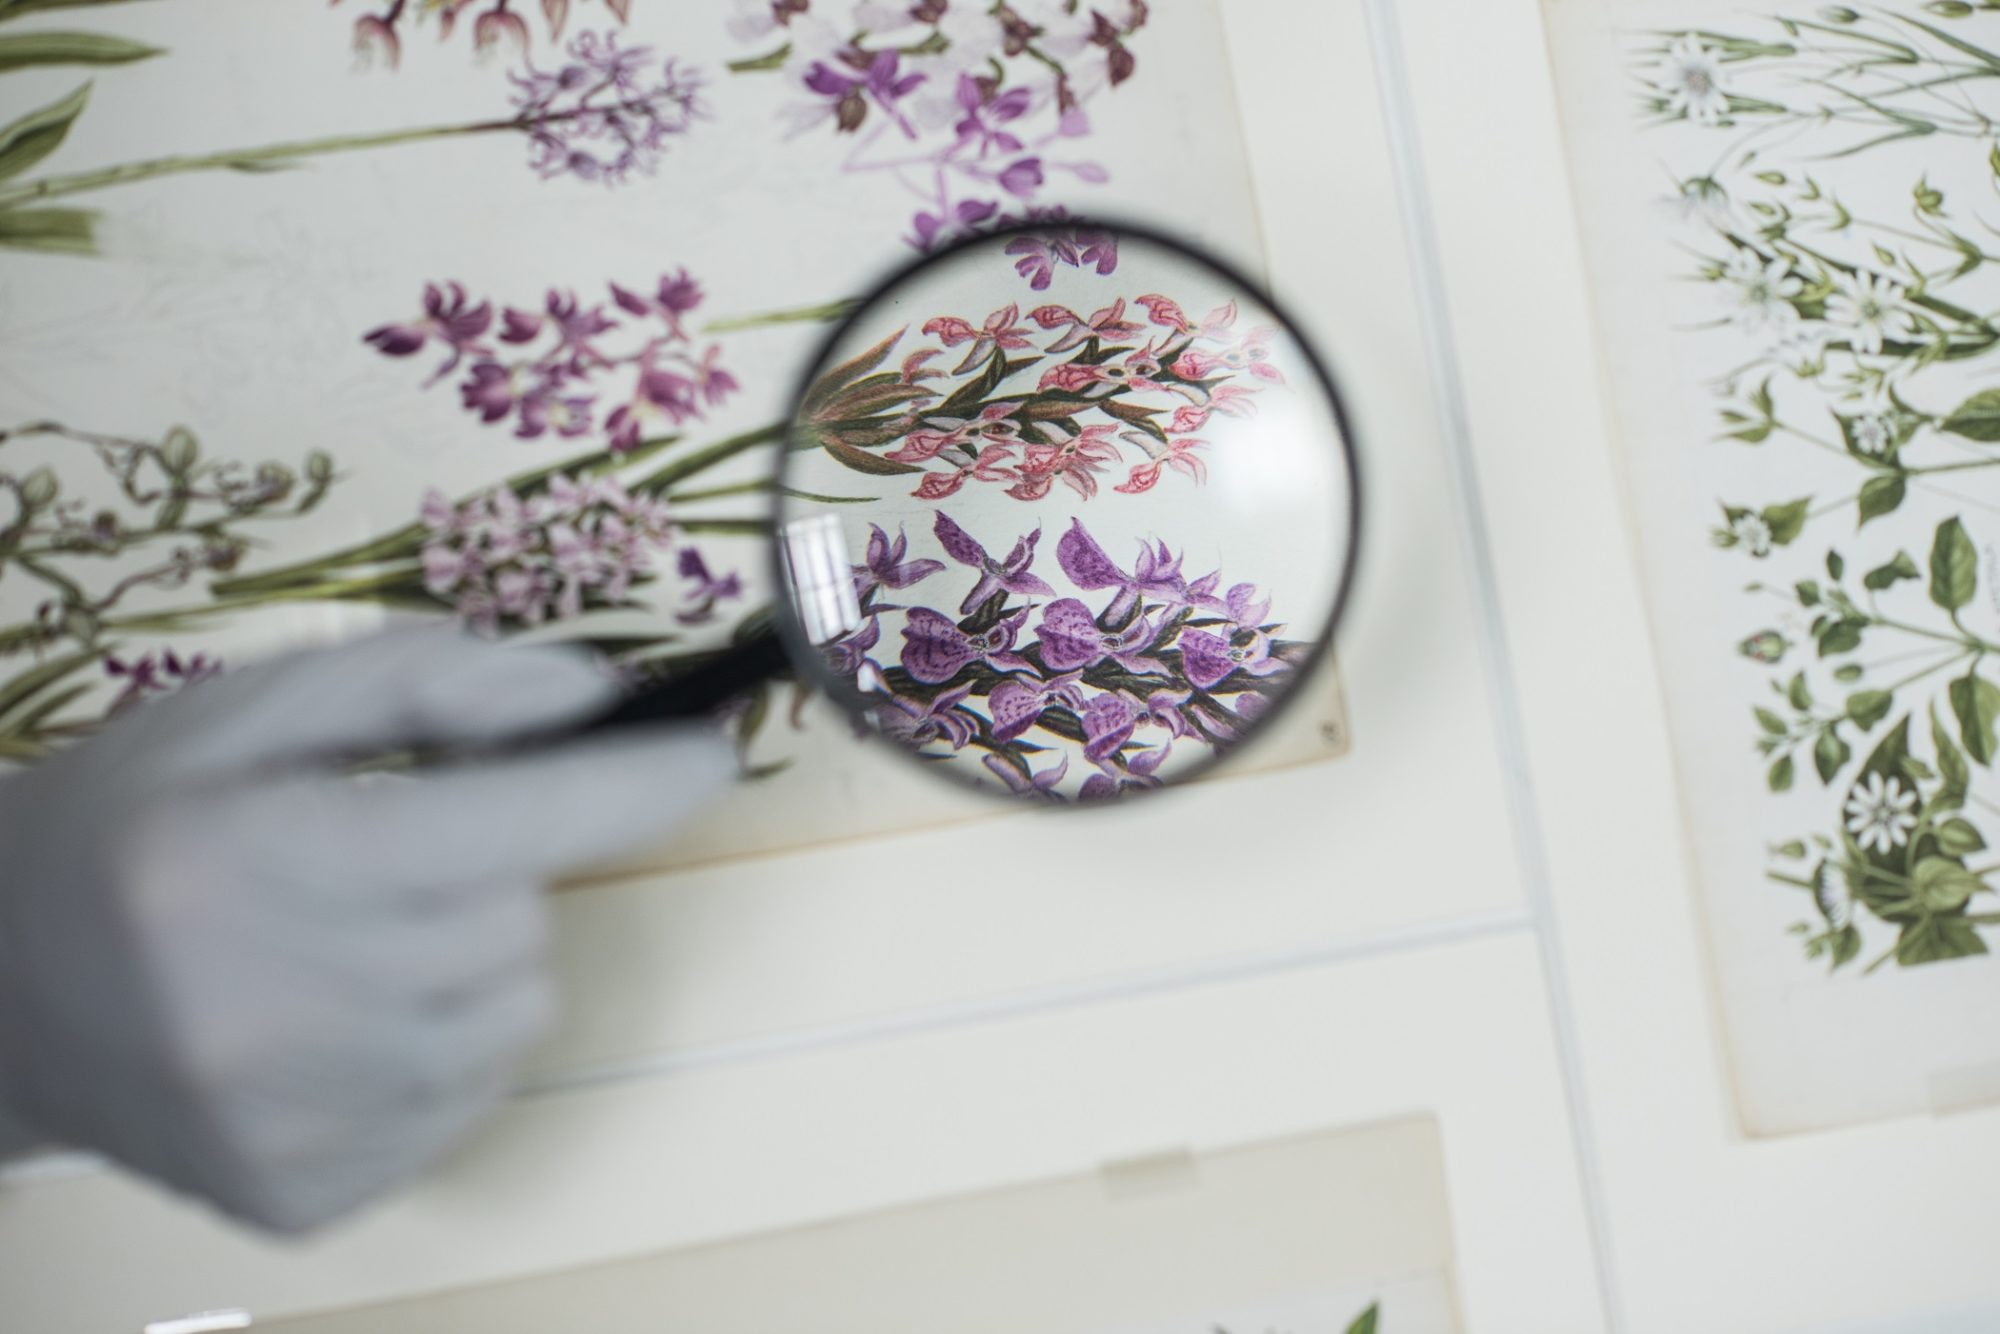 A botanical illustration by Keble Martin looked at through a magnifier